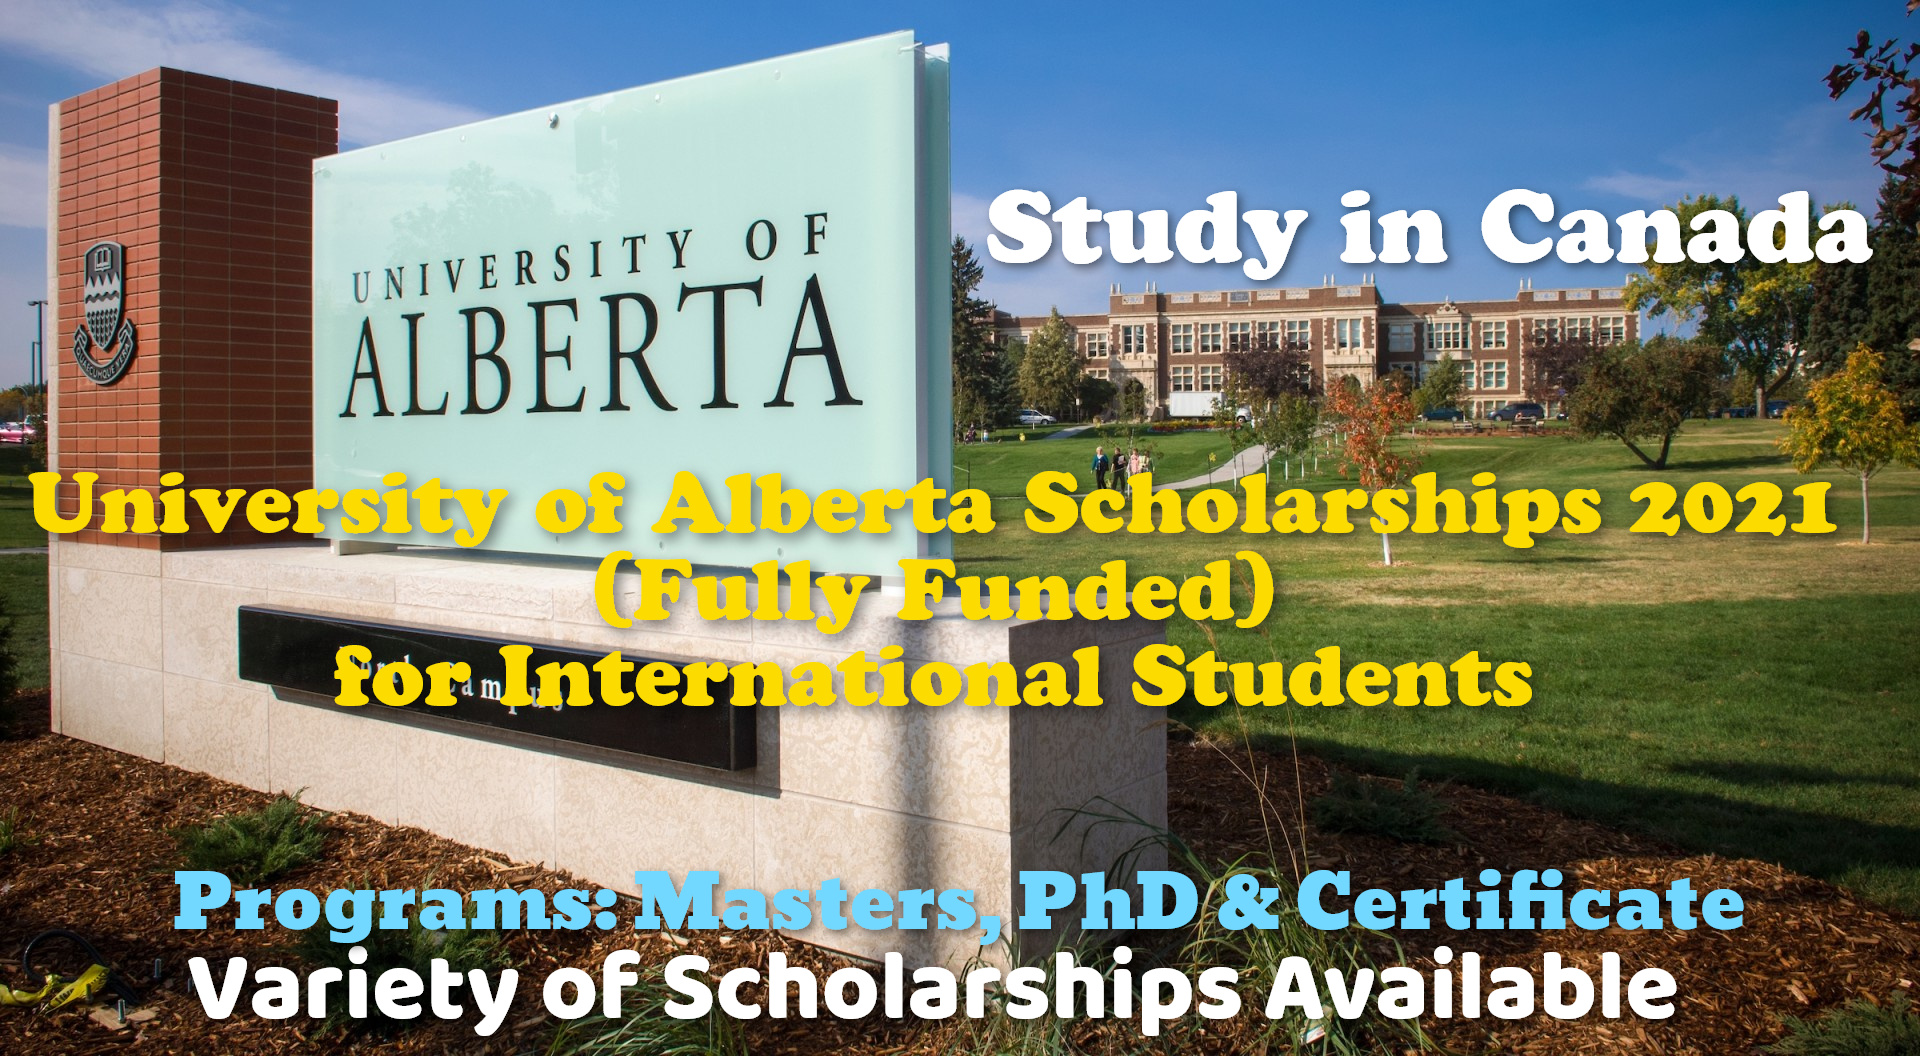 University of Alberta Scholarships 2021 (Fully Funded) for Everyone